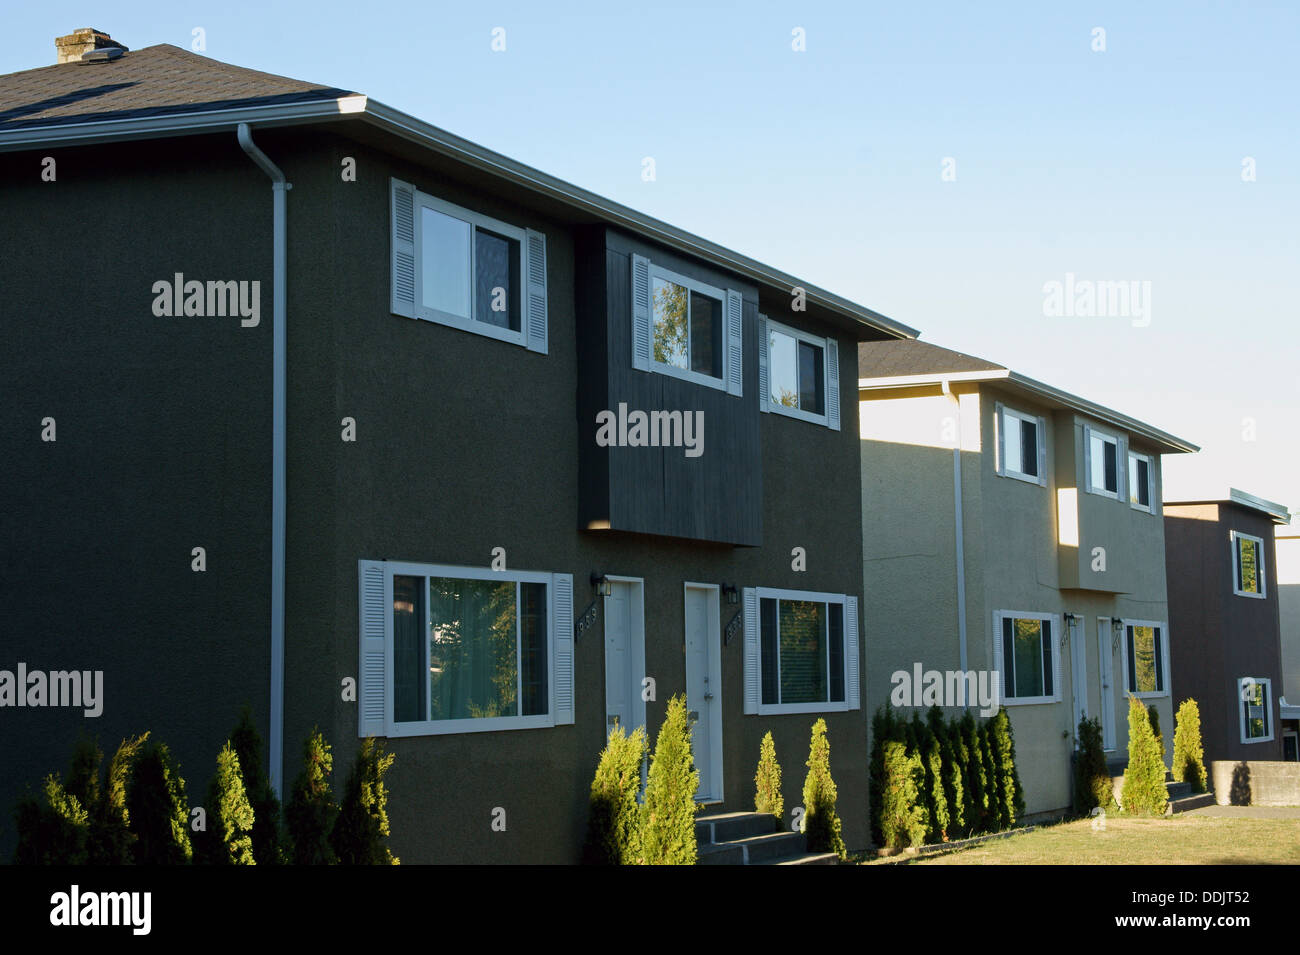 Well-kept rental housing units in Vancouver, BC, Canada Stock Photo